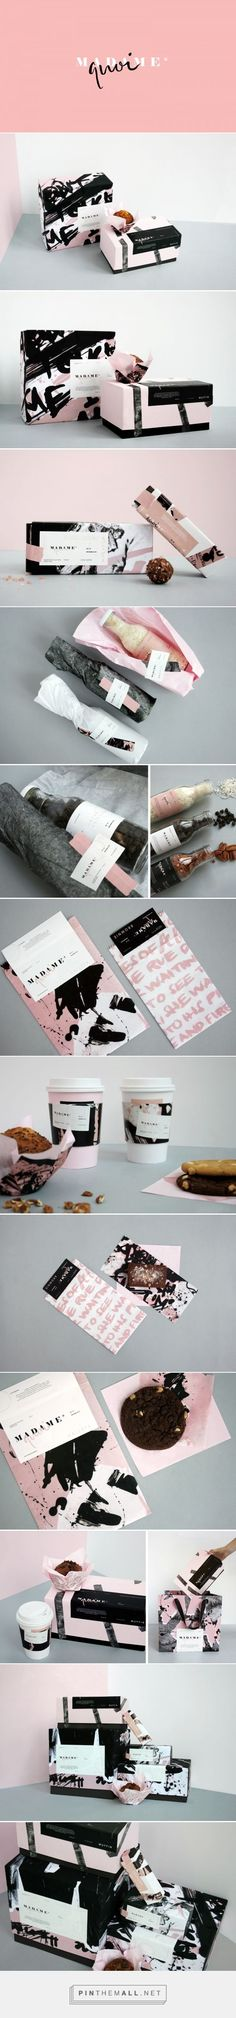 Madame Quoi - Packaging of the World - Creative Package Design Gallery - http://www.packagingoftheworld.com/2016/08/madame-quoi.html